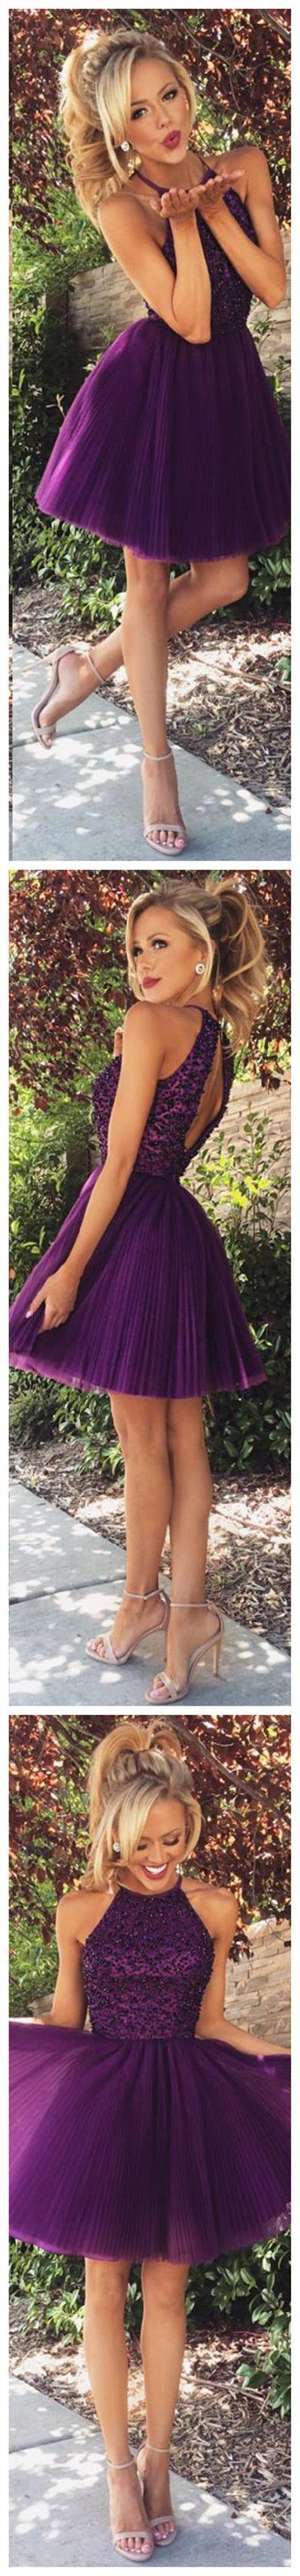 Fashion Purple High Neck Open Back Homecoming Dress,Short Prom Dresses on Luulla